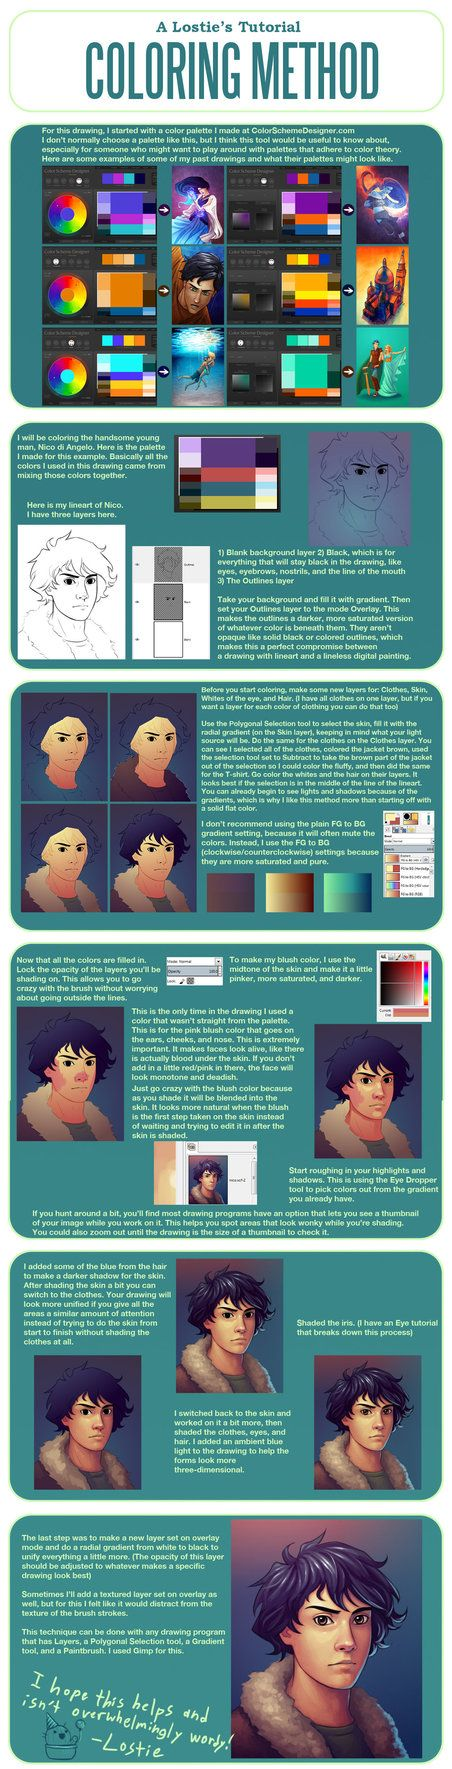 A Lostie's Tutorial - Coloring Method by lostie815 from DA  http://lostie815.deviantart.com/art/A-Lostie-s-Tutorial-Coloring-Method-392198183